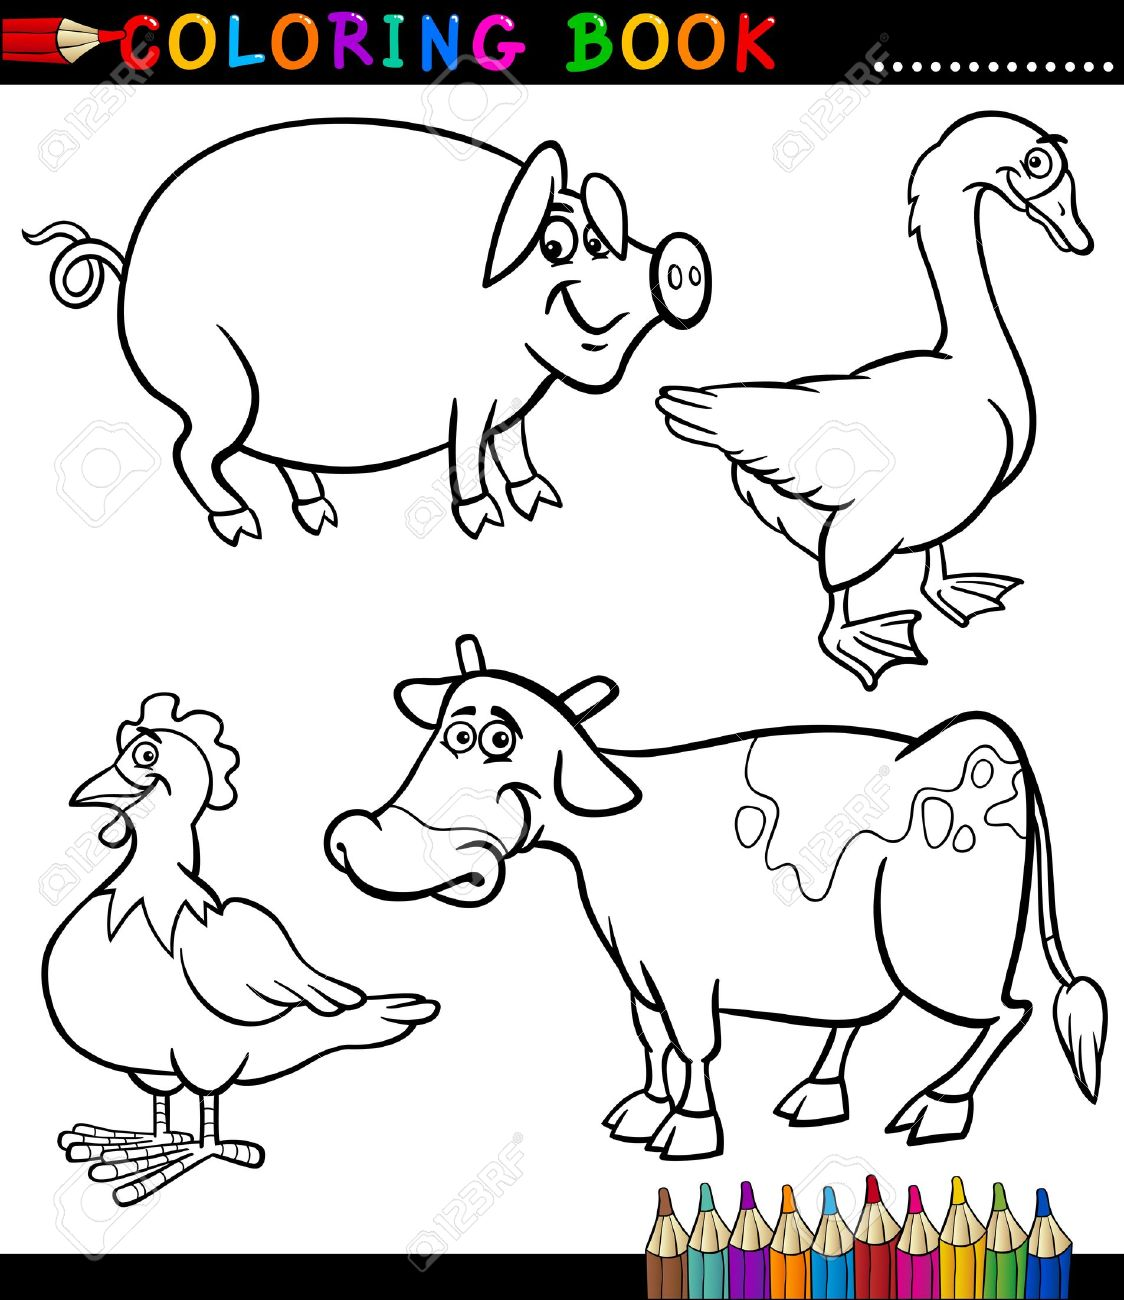 Livre De Coloriage Noir Et Blanc Ou Page Cartoon Illustration Set De